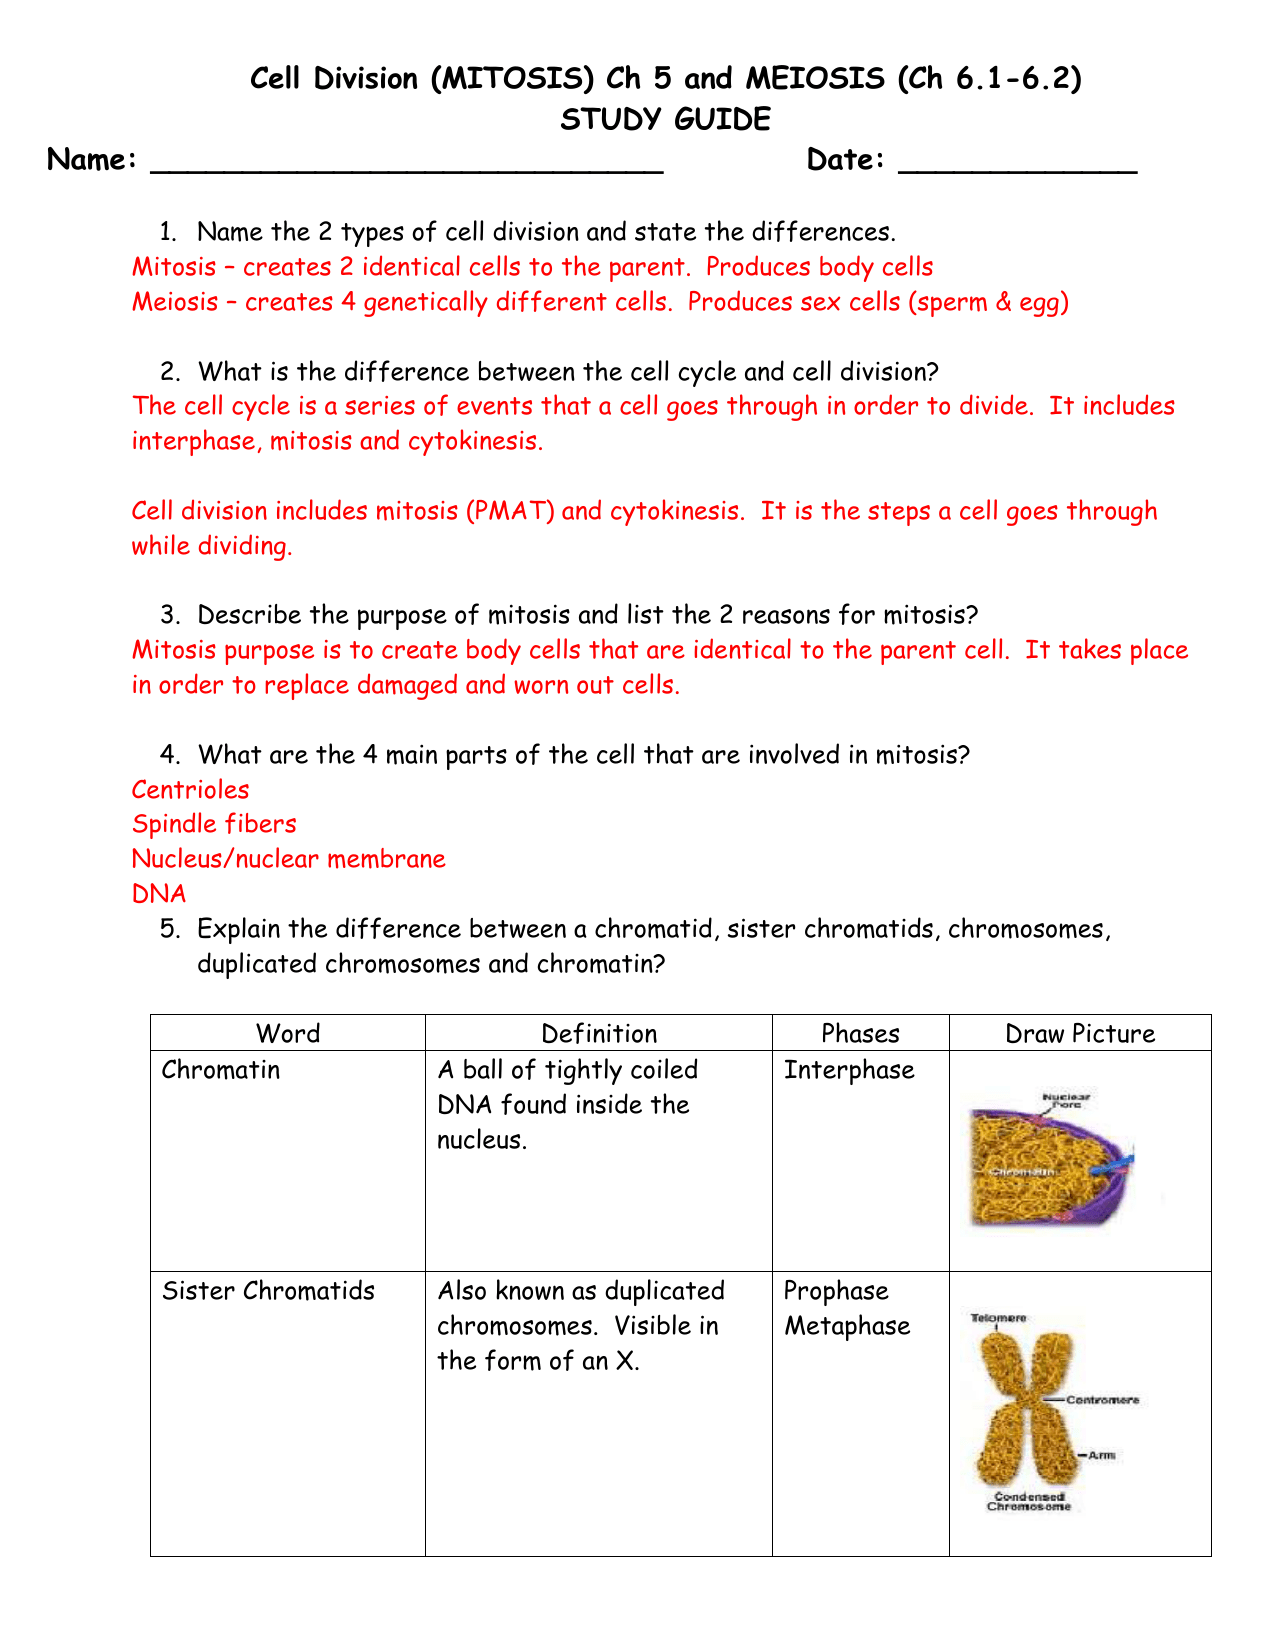 Cell Division Mitosis And Cytokinesis Worksheet Answers